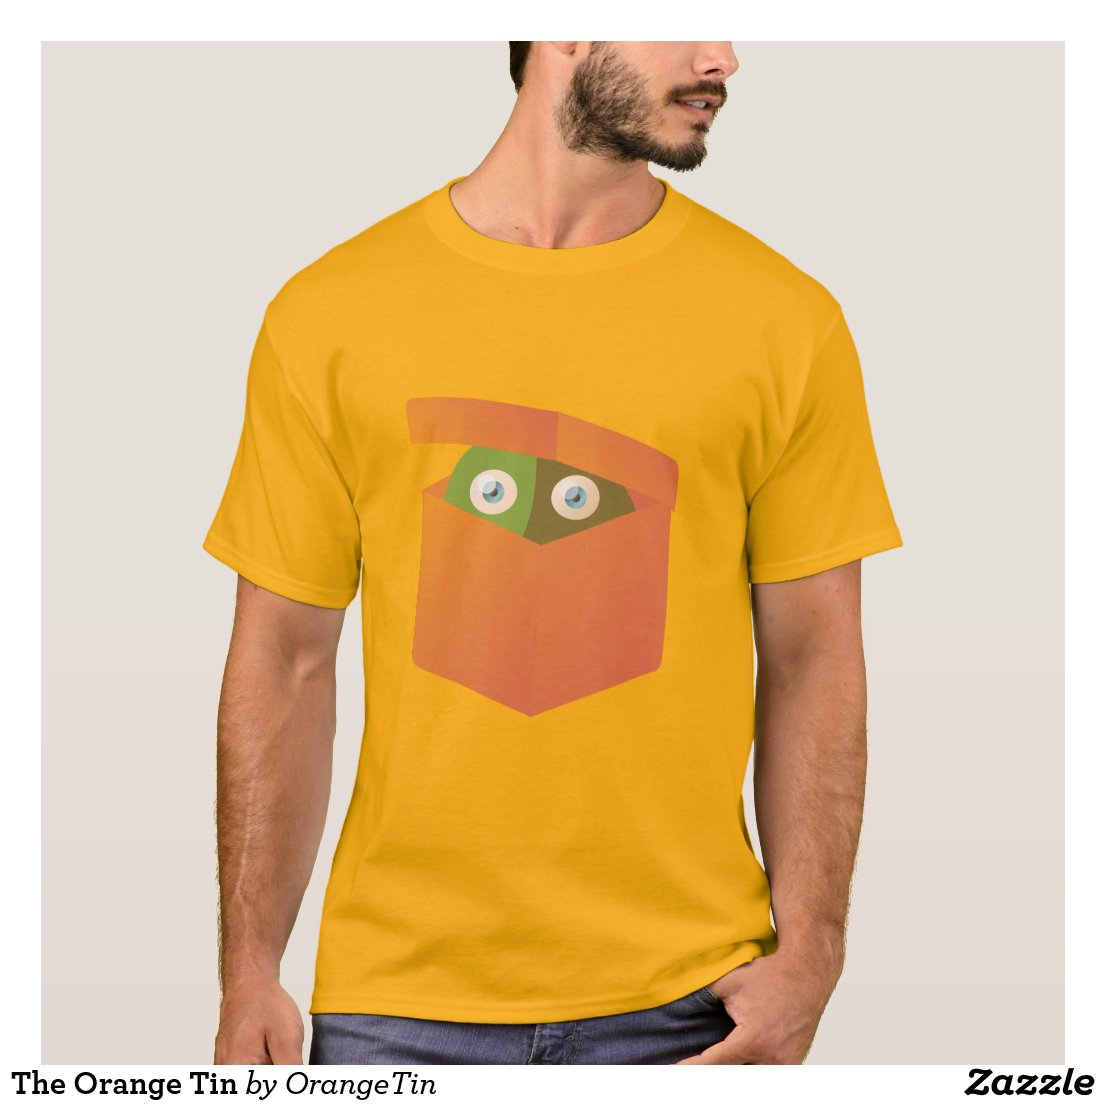 The Orange Tin T-Shirt